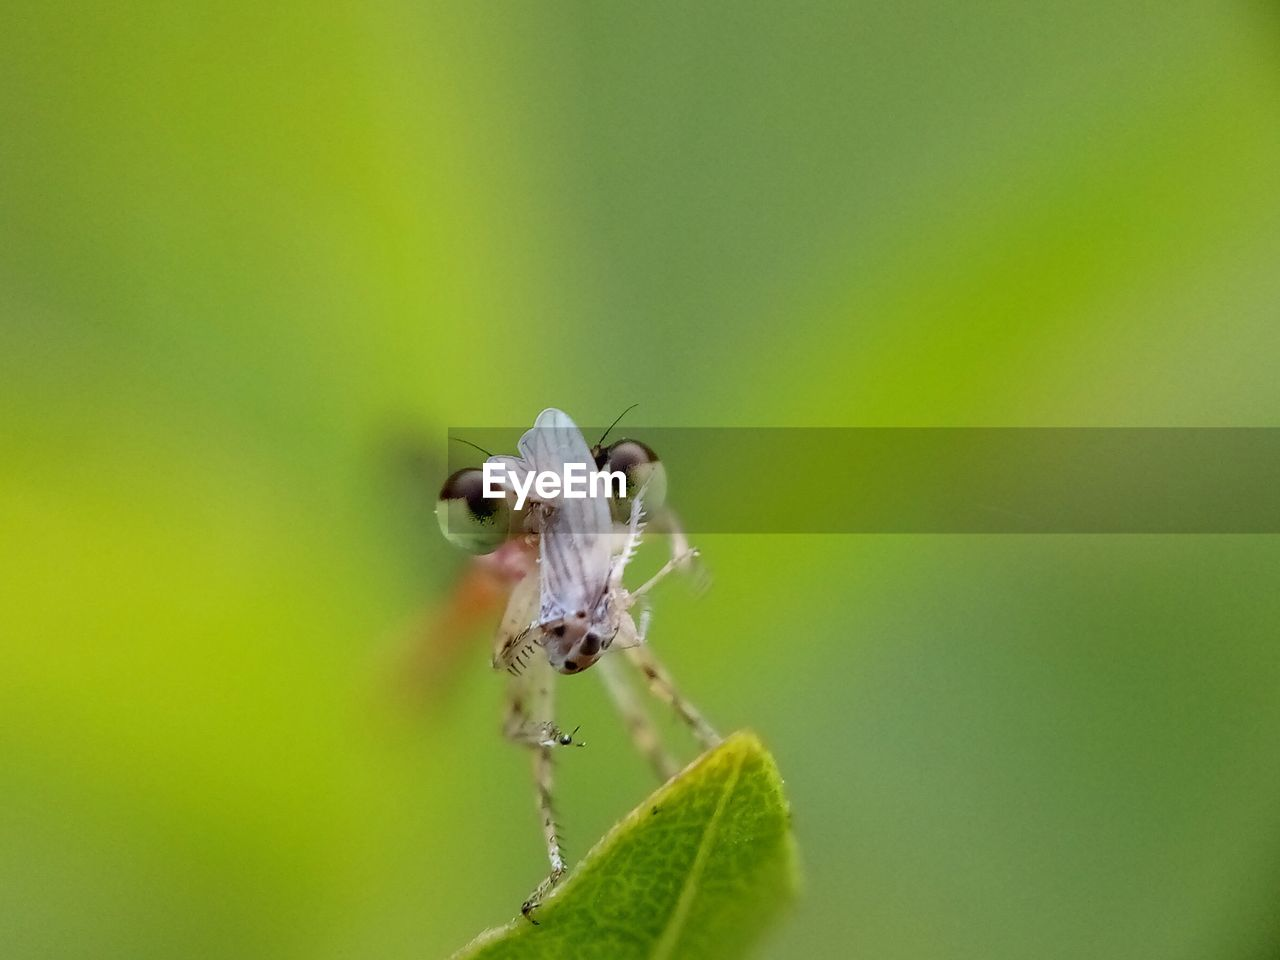 animal wildlife, animal, animal themes, invertebrate, animals in the wild, insect, one animal, close-up, plant, green color, plant part, leaf, nature, no people, beauty in nature, zoology, day, arthropod, growth, selective focus